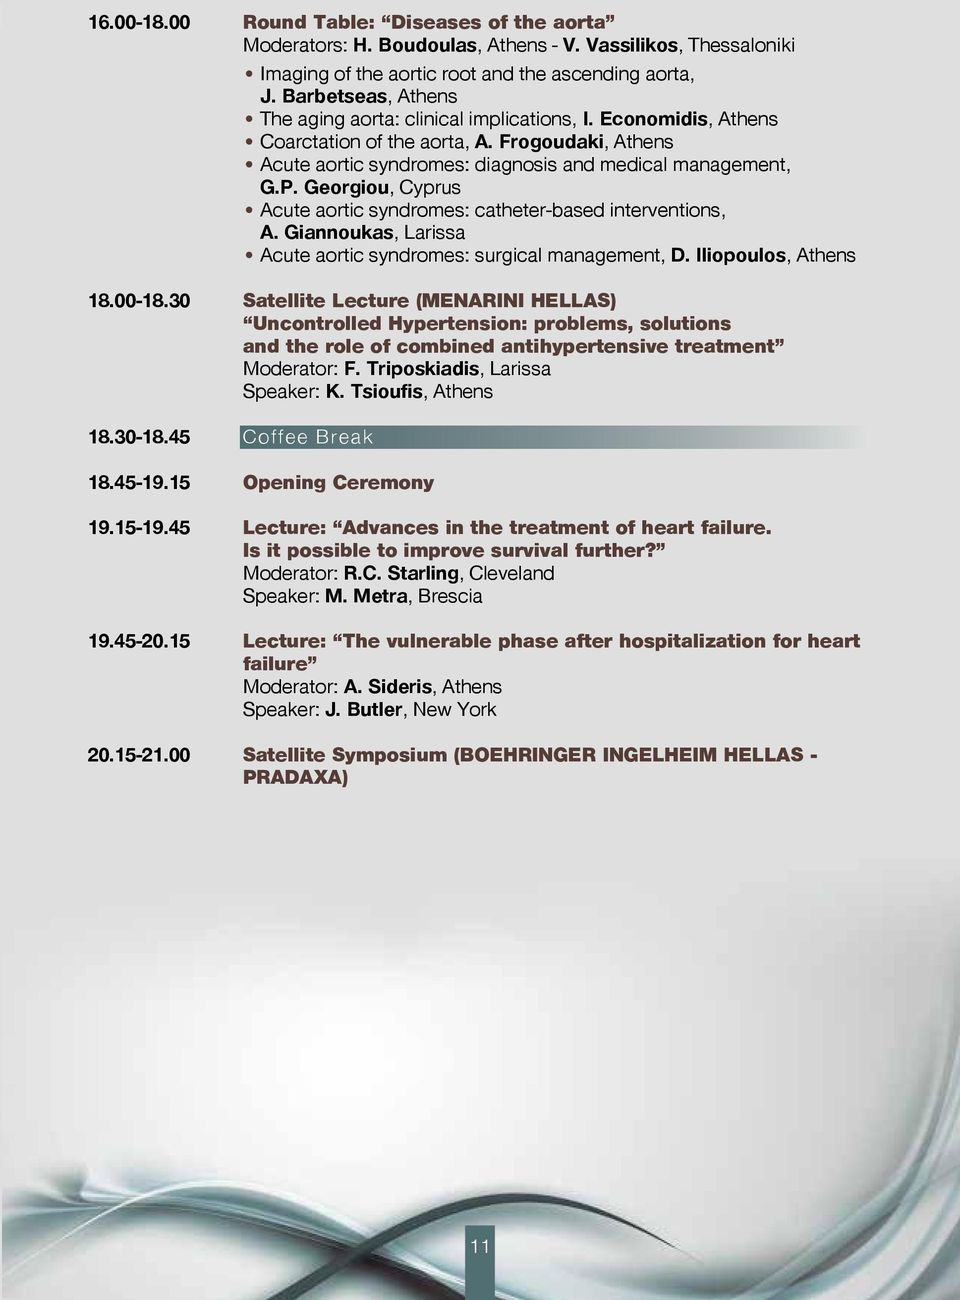 Georgiou, Cyprus Acute aortic syndromes: catheter-based interventions, A. Giannoukas, Larissa Acute aortic syndromes: surgical management, D. Iliopoulos, Athens 18.00-18.